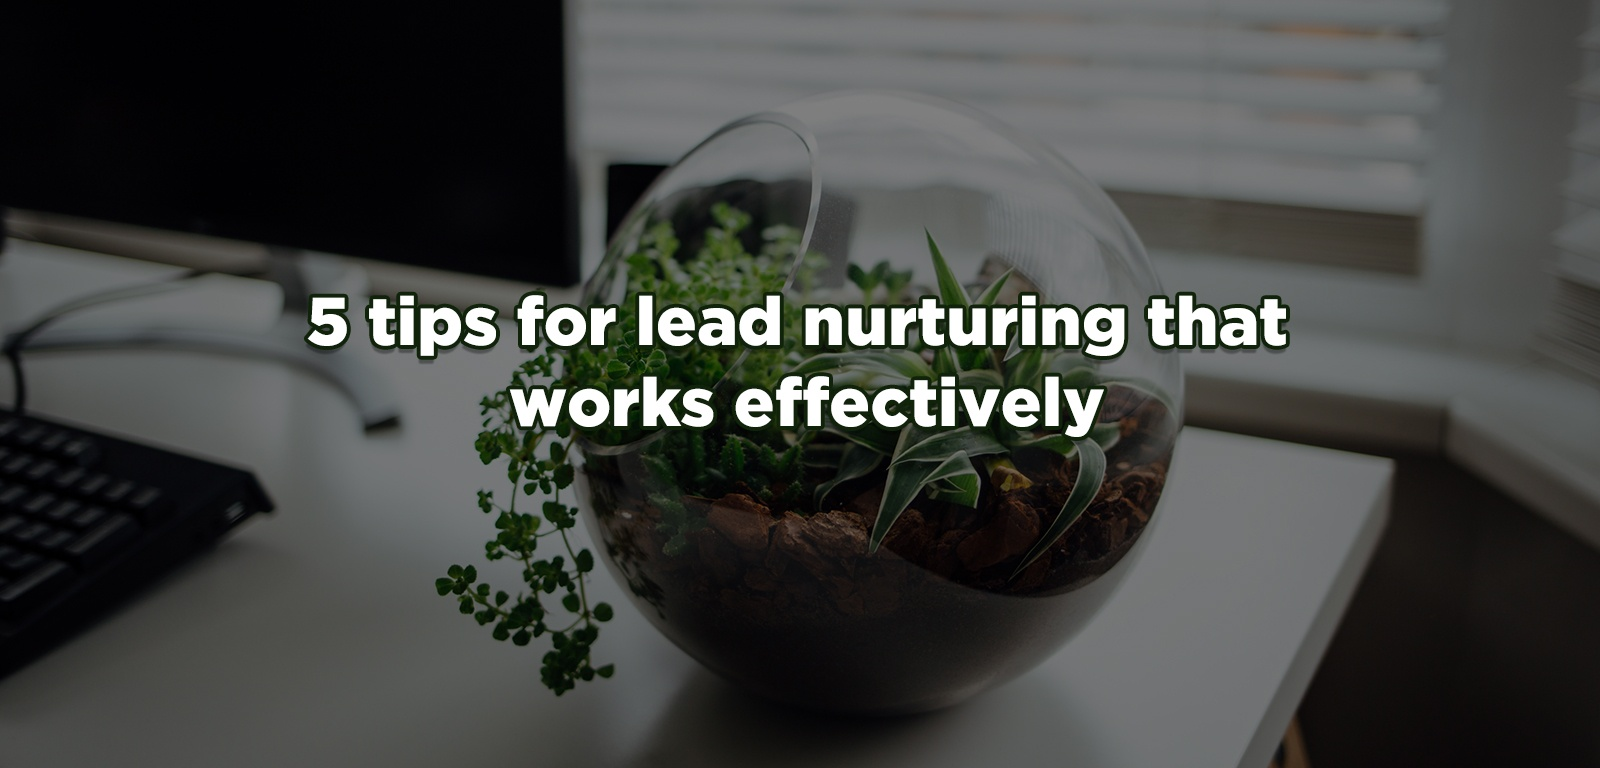 5 tips for lead nurturing that works effectively